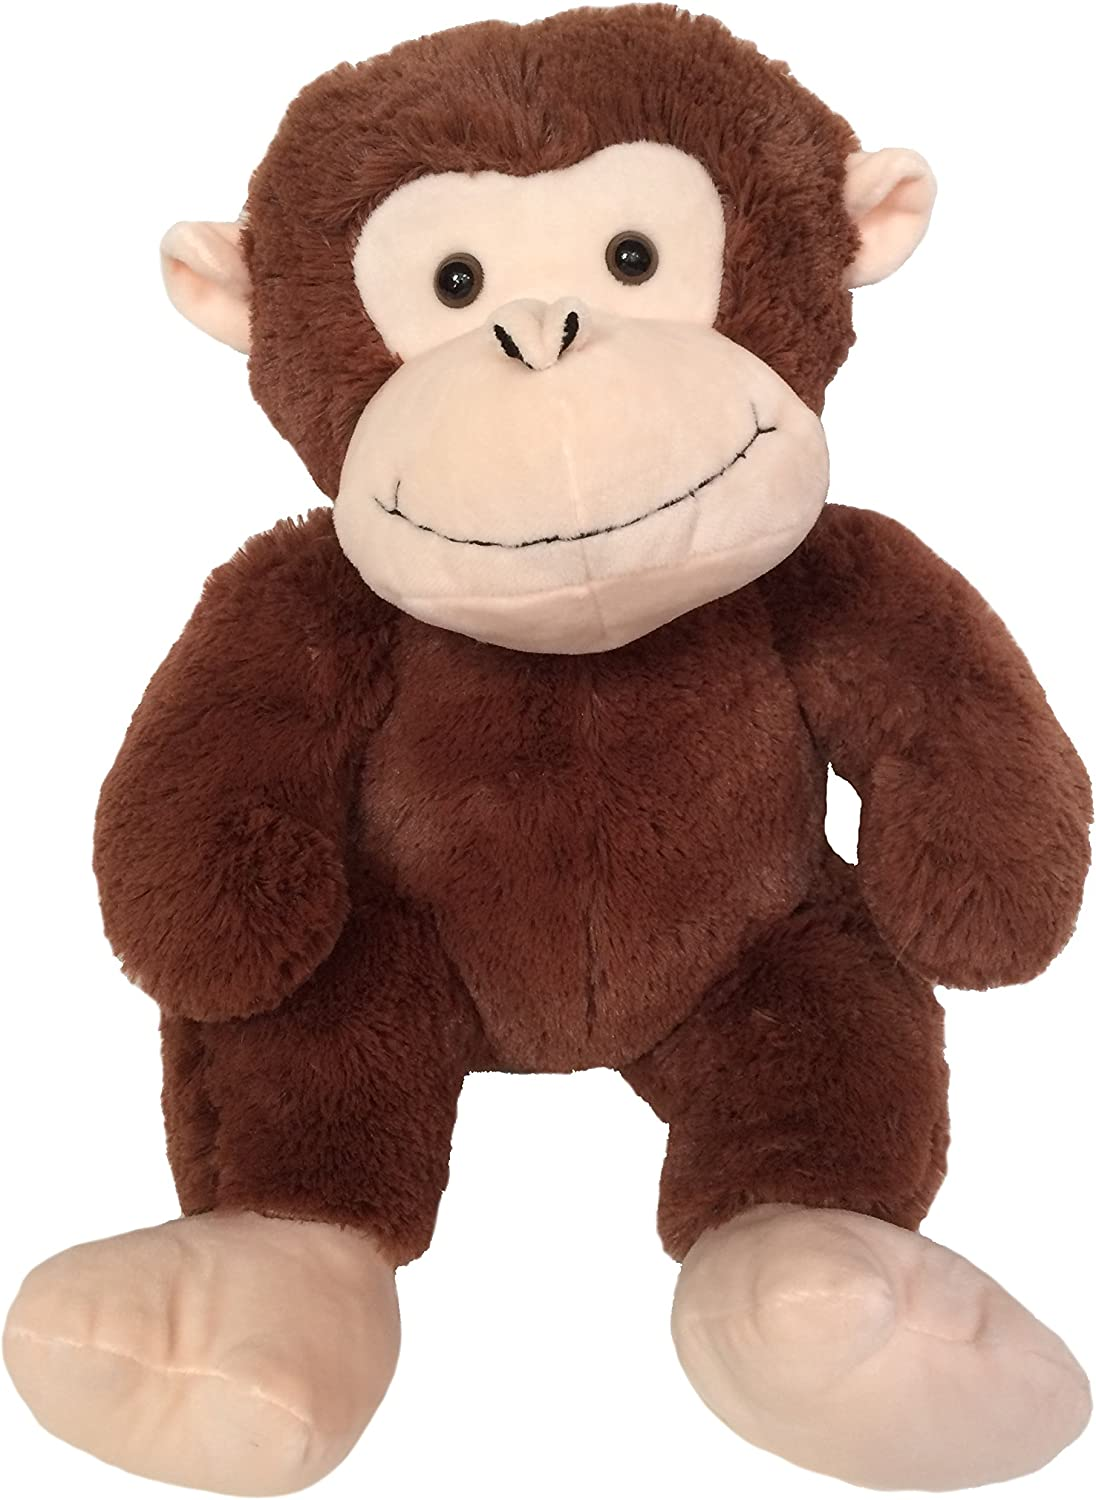 Wishpets Plush Sitting Monkey, 14 Inches, Brown by Wishpets